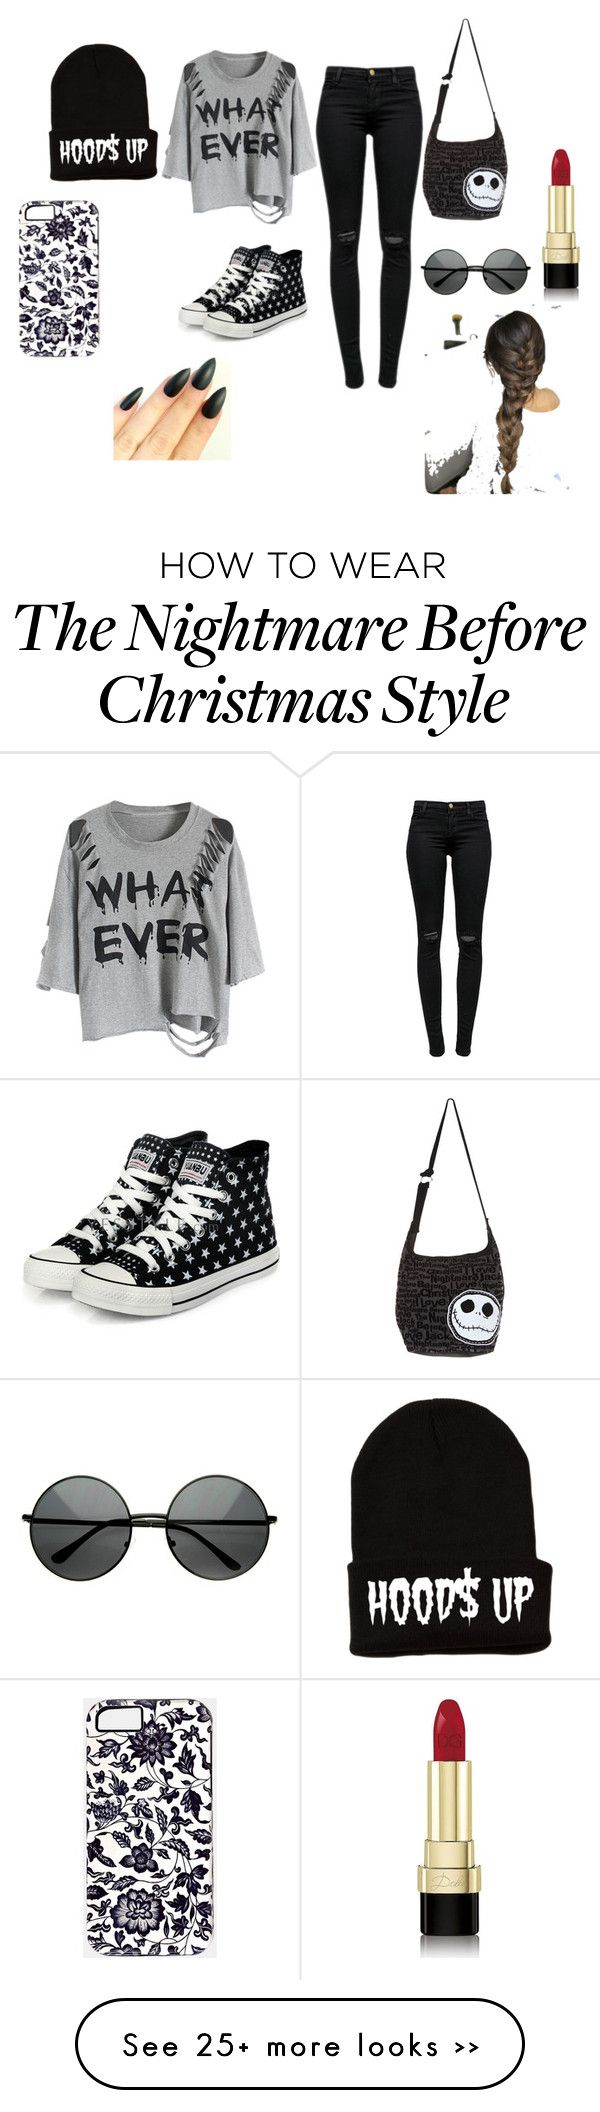 """""""Cool ♥♥"""" by raerae567 on Polyvore"""